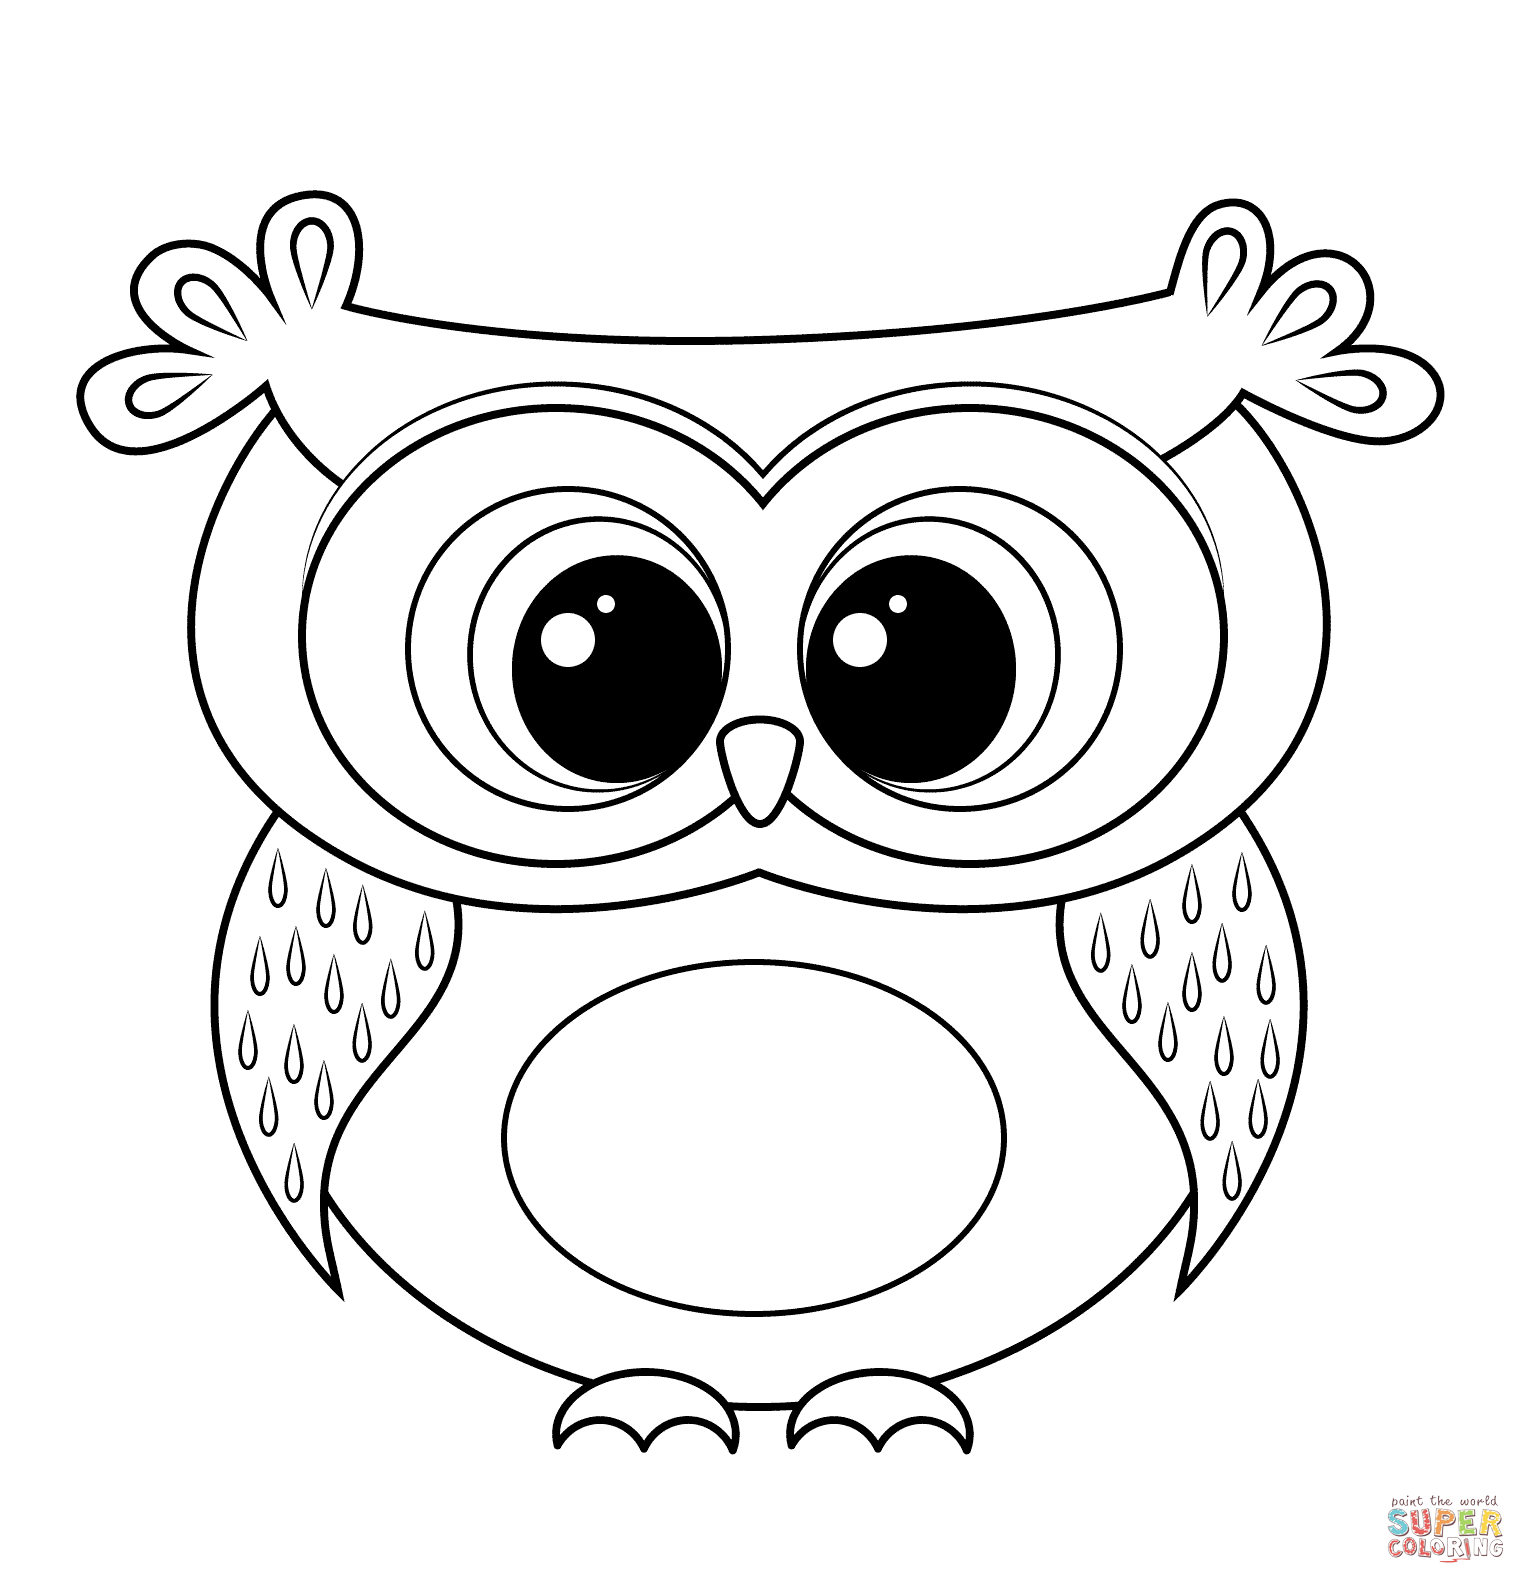 owl picture to color cartoon owl coloring page free printable coloring pages picture to owl color